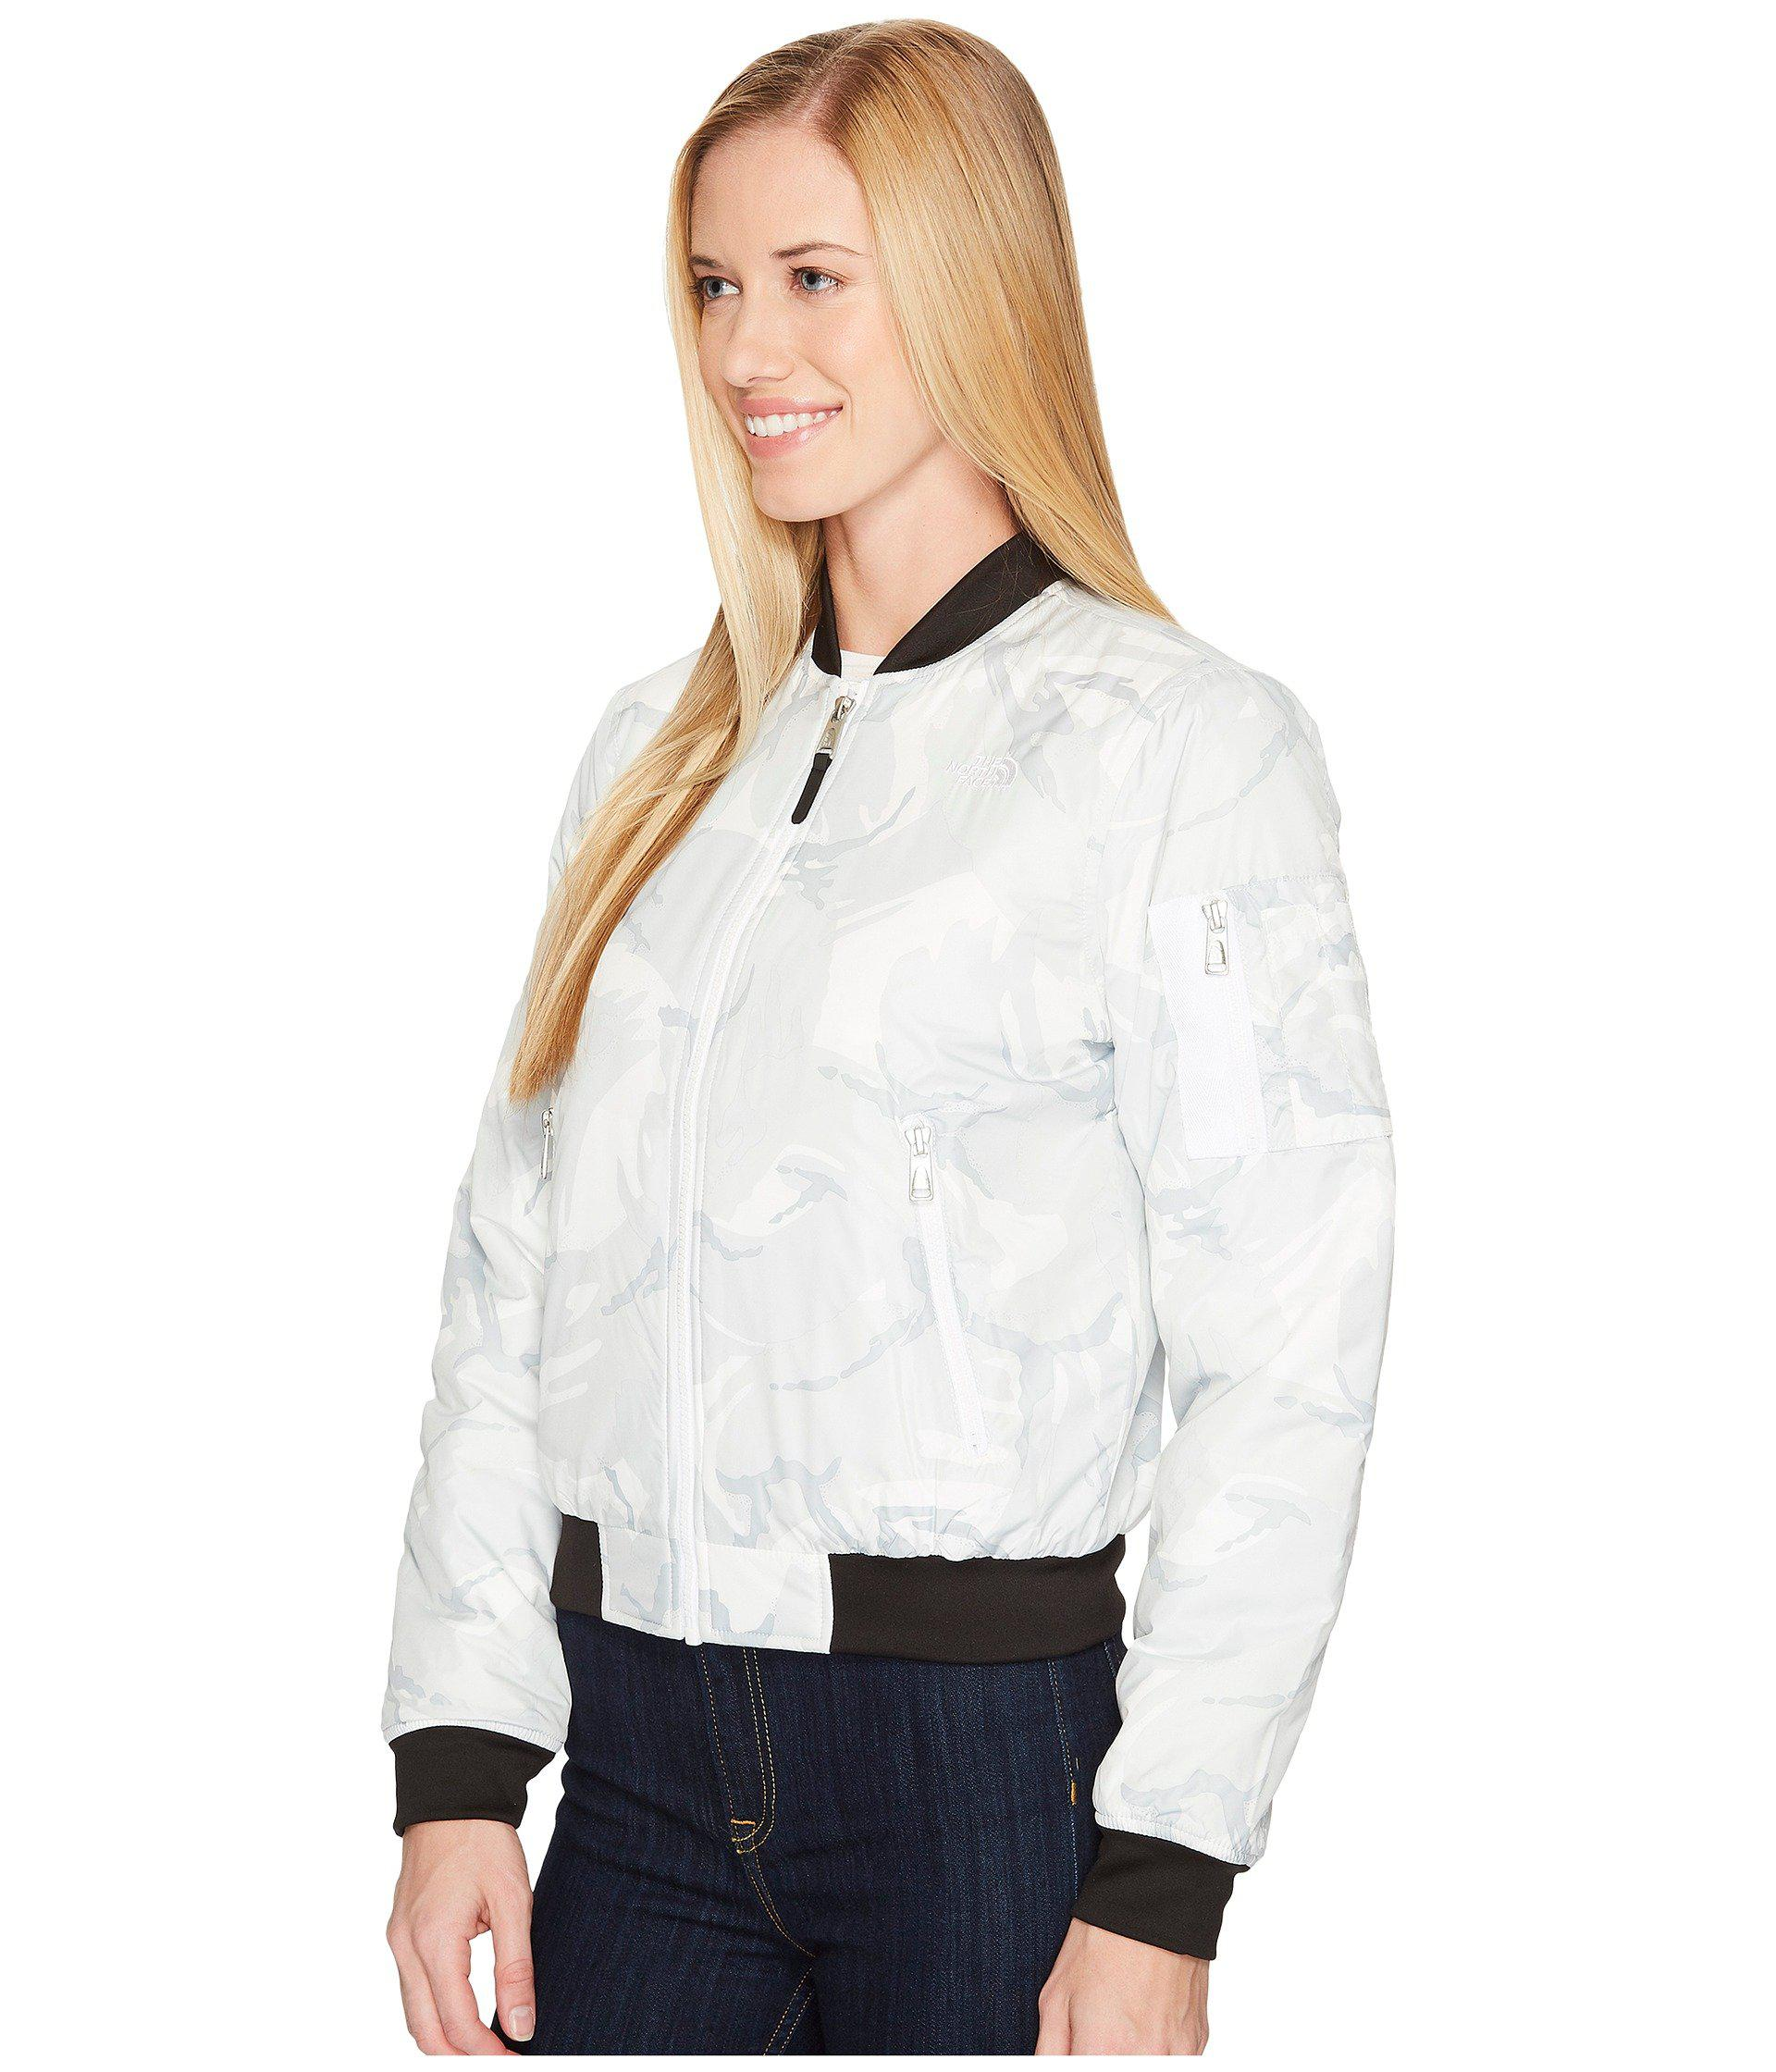 Lyst - The North Face Barstol Bomber in White - Save 29% ee0ff1016